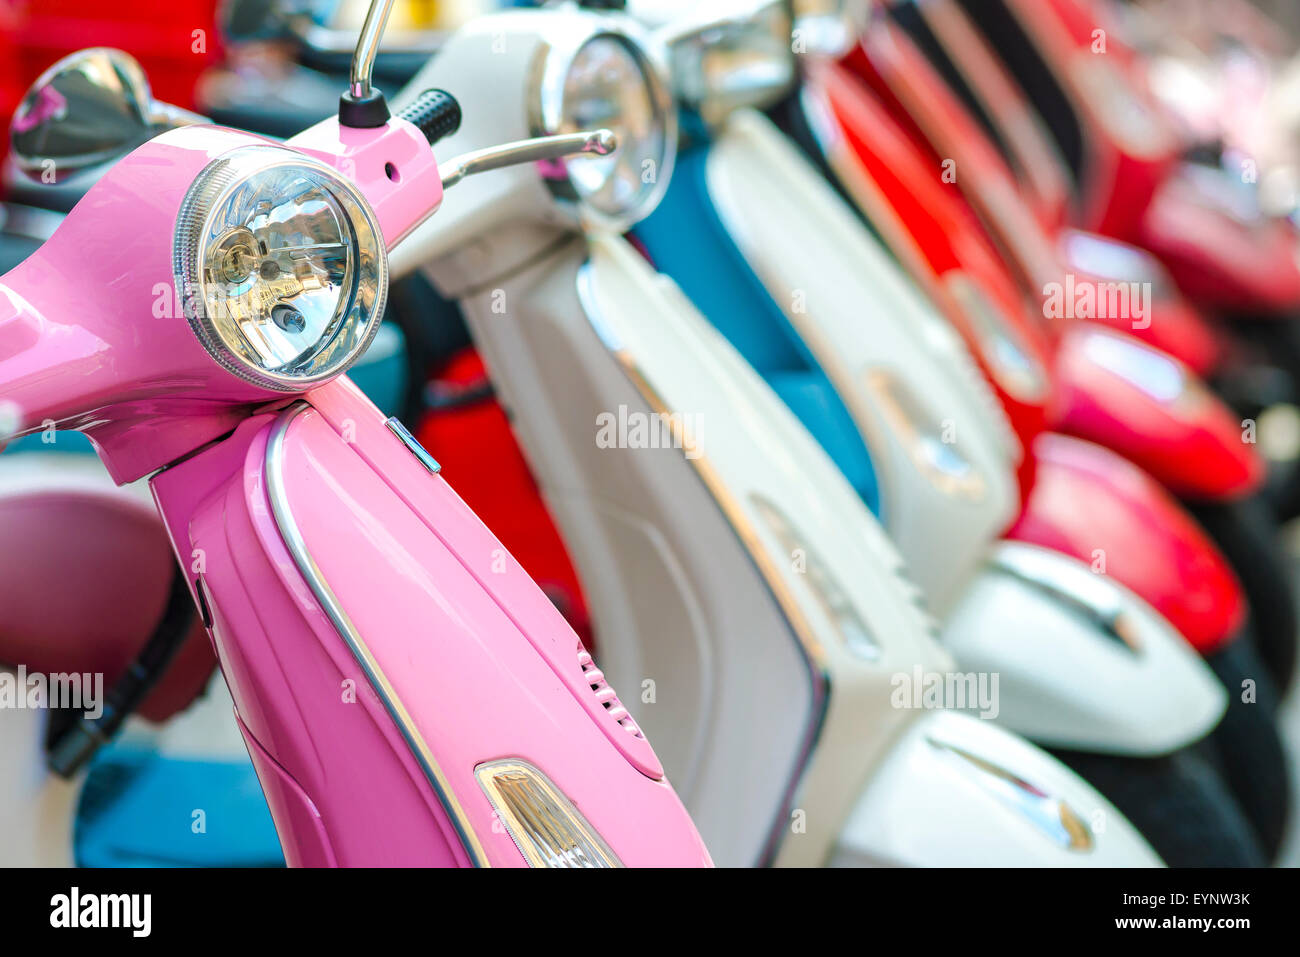 Scooter Rome, a line of colorful scooters parked in a street on the Aventine Hill in Rome, Italy. - Stock Image